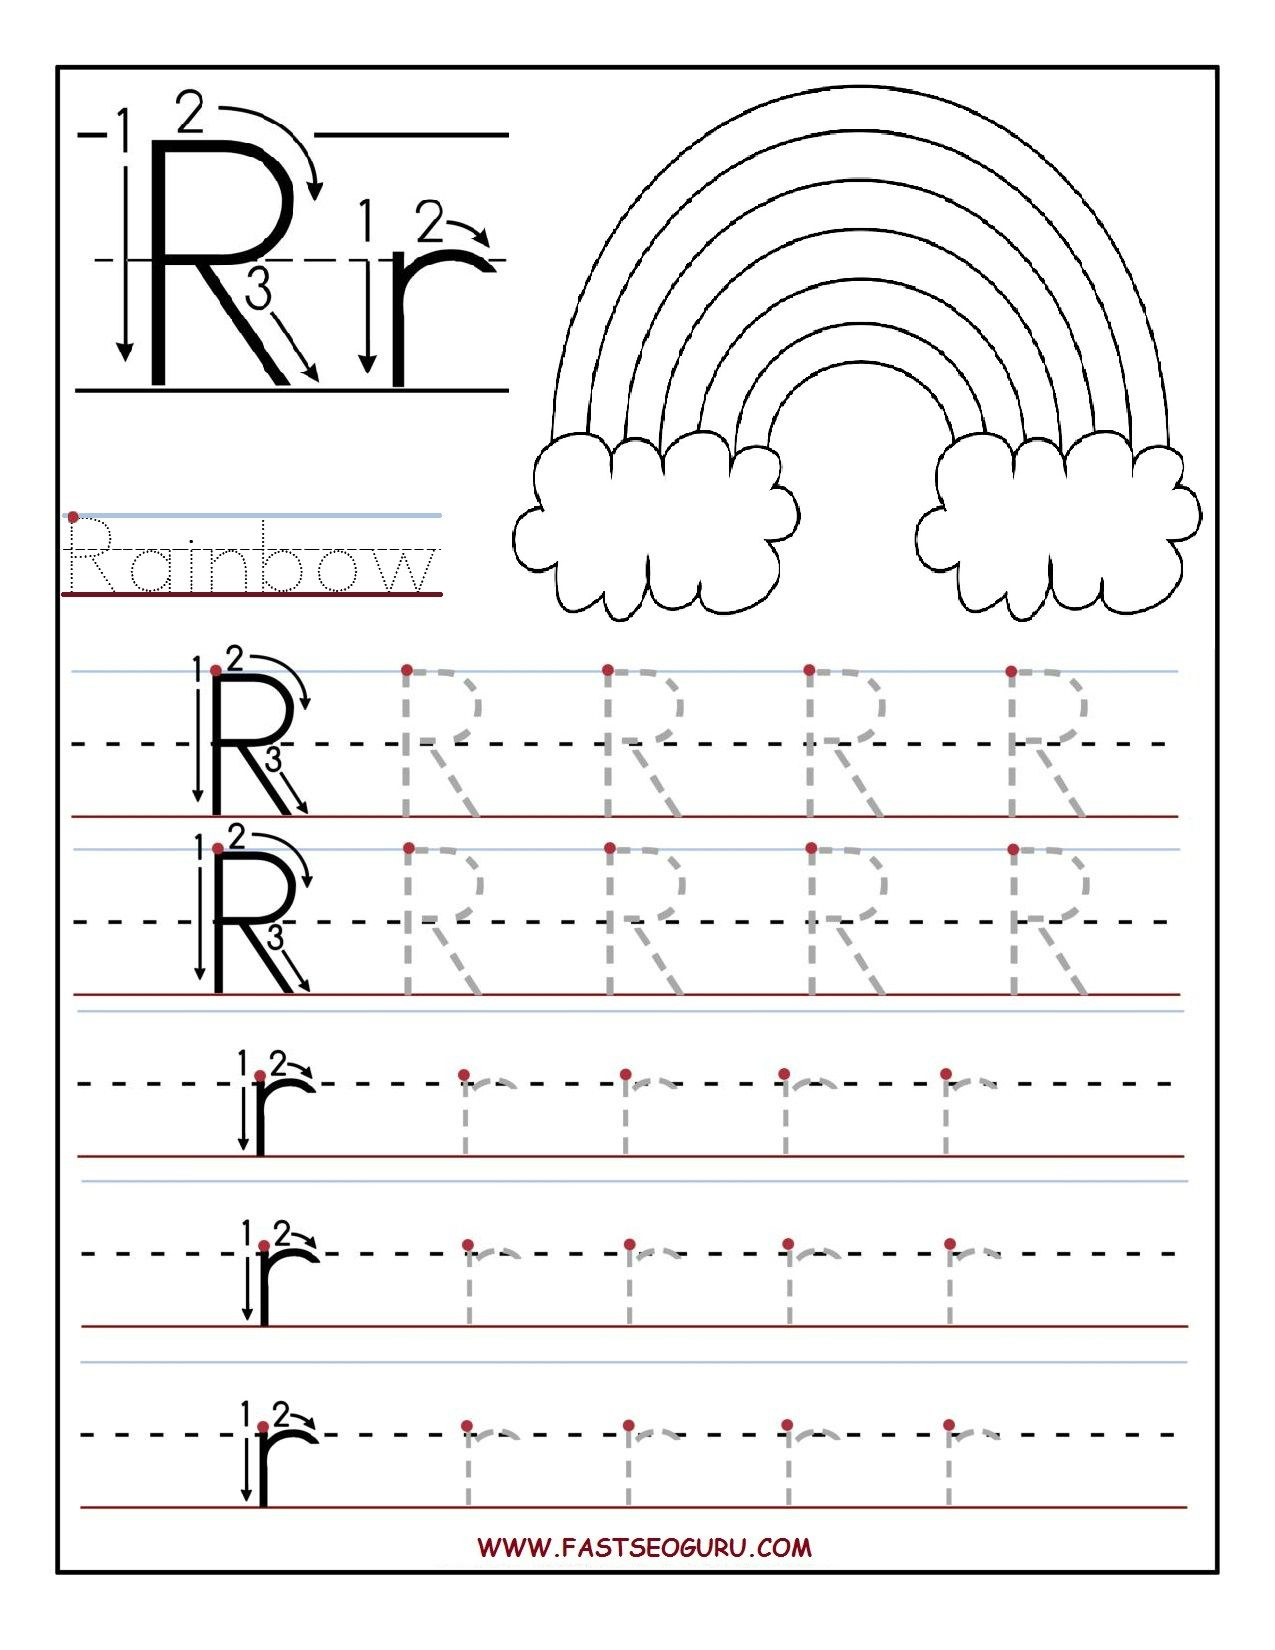 Printable Letter R Tracing Worksheets For Preschool with Letter R Worksheets Preschool Free